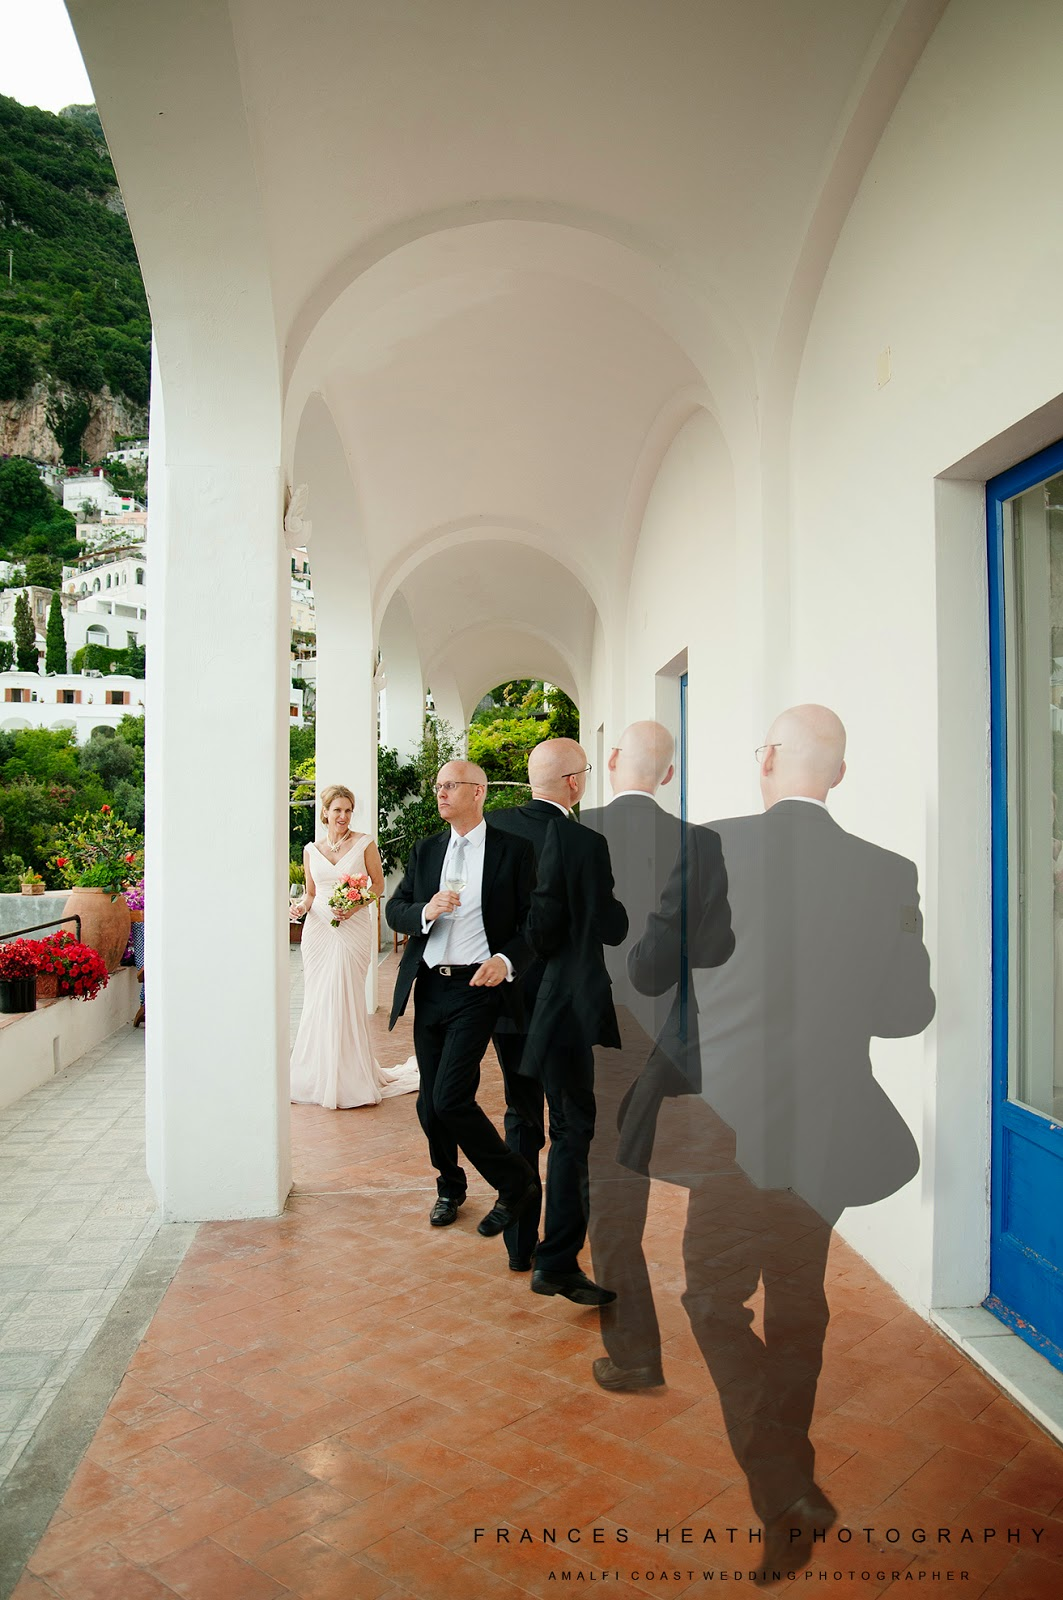 Bride and groom portrait in Positano